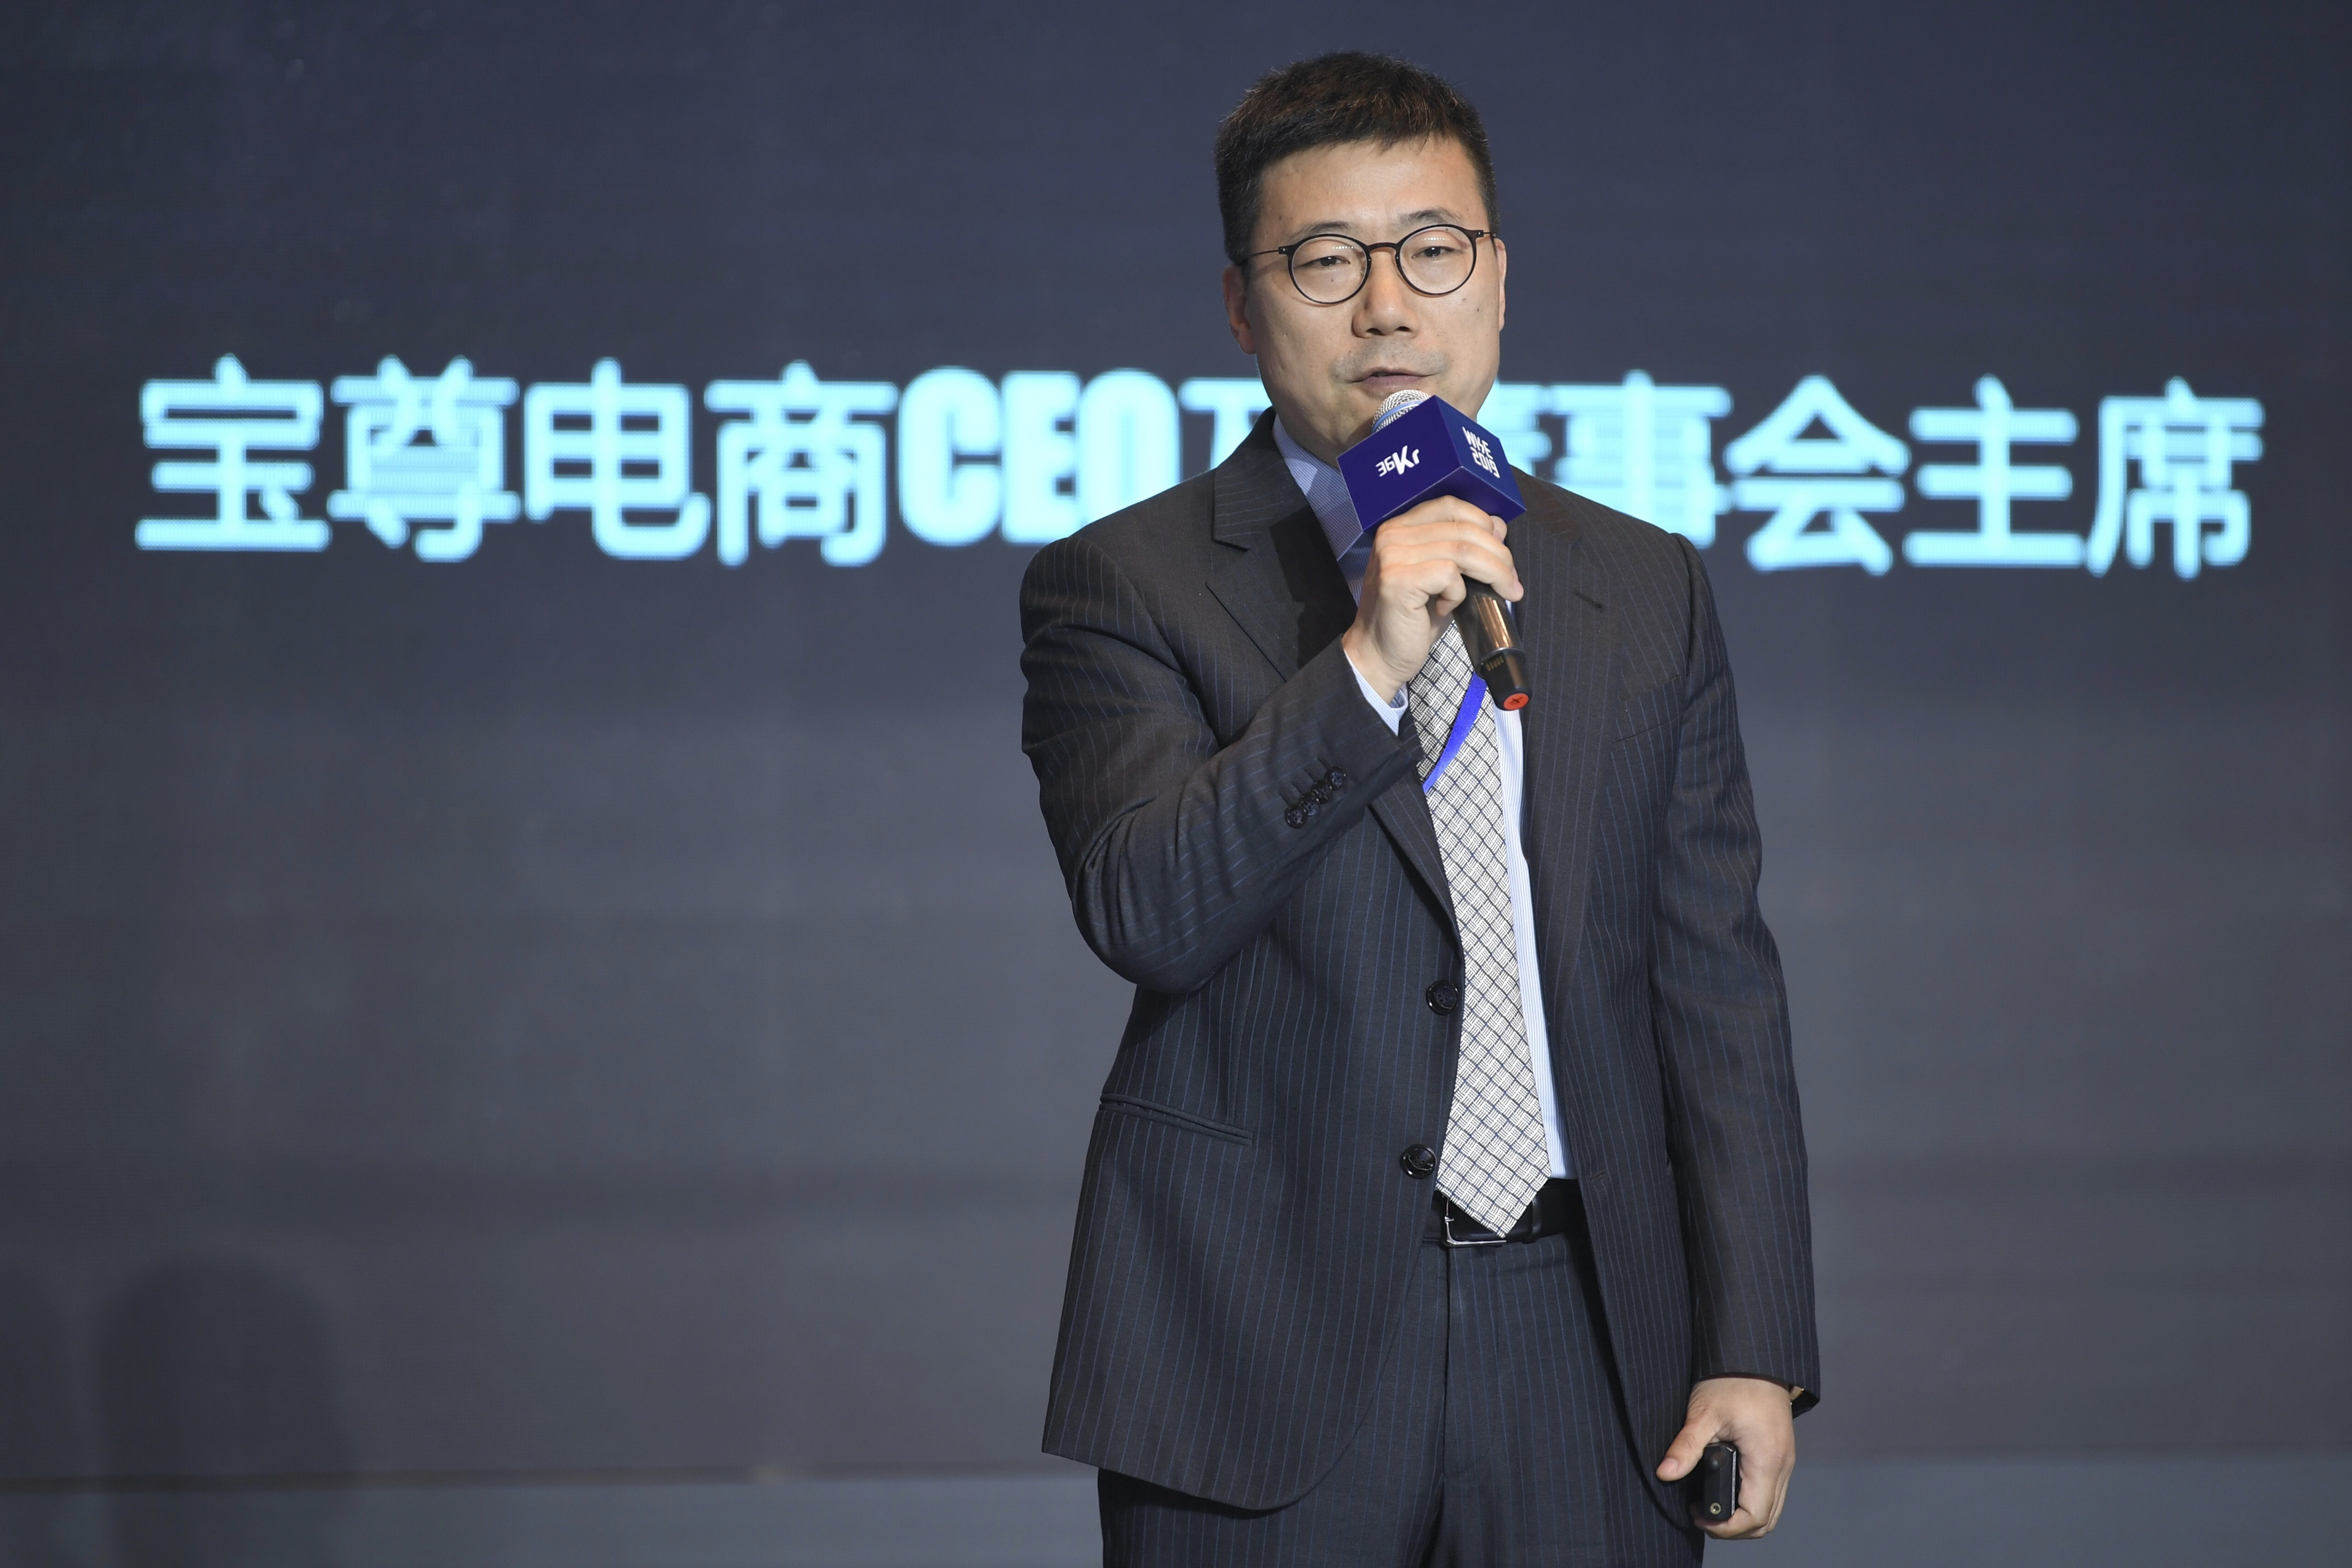 Vincent Qiu Wenbin, chief executive officer of Baozun Commerce, a Chinese company providing professional end-to-end e-commerce services, speaks during the 2019 WISE conference organised by 36Kr in Beijing, China, 9 July 2019. (Imaginechina via AP Images)